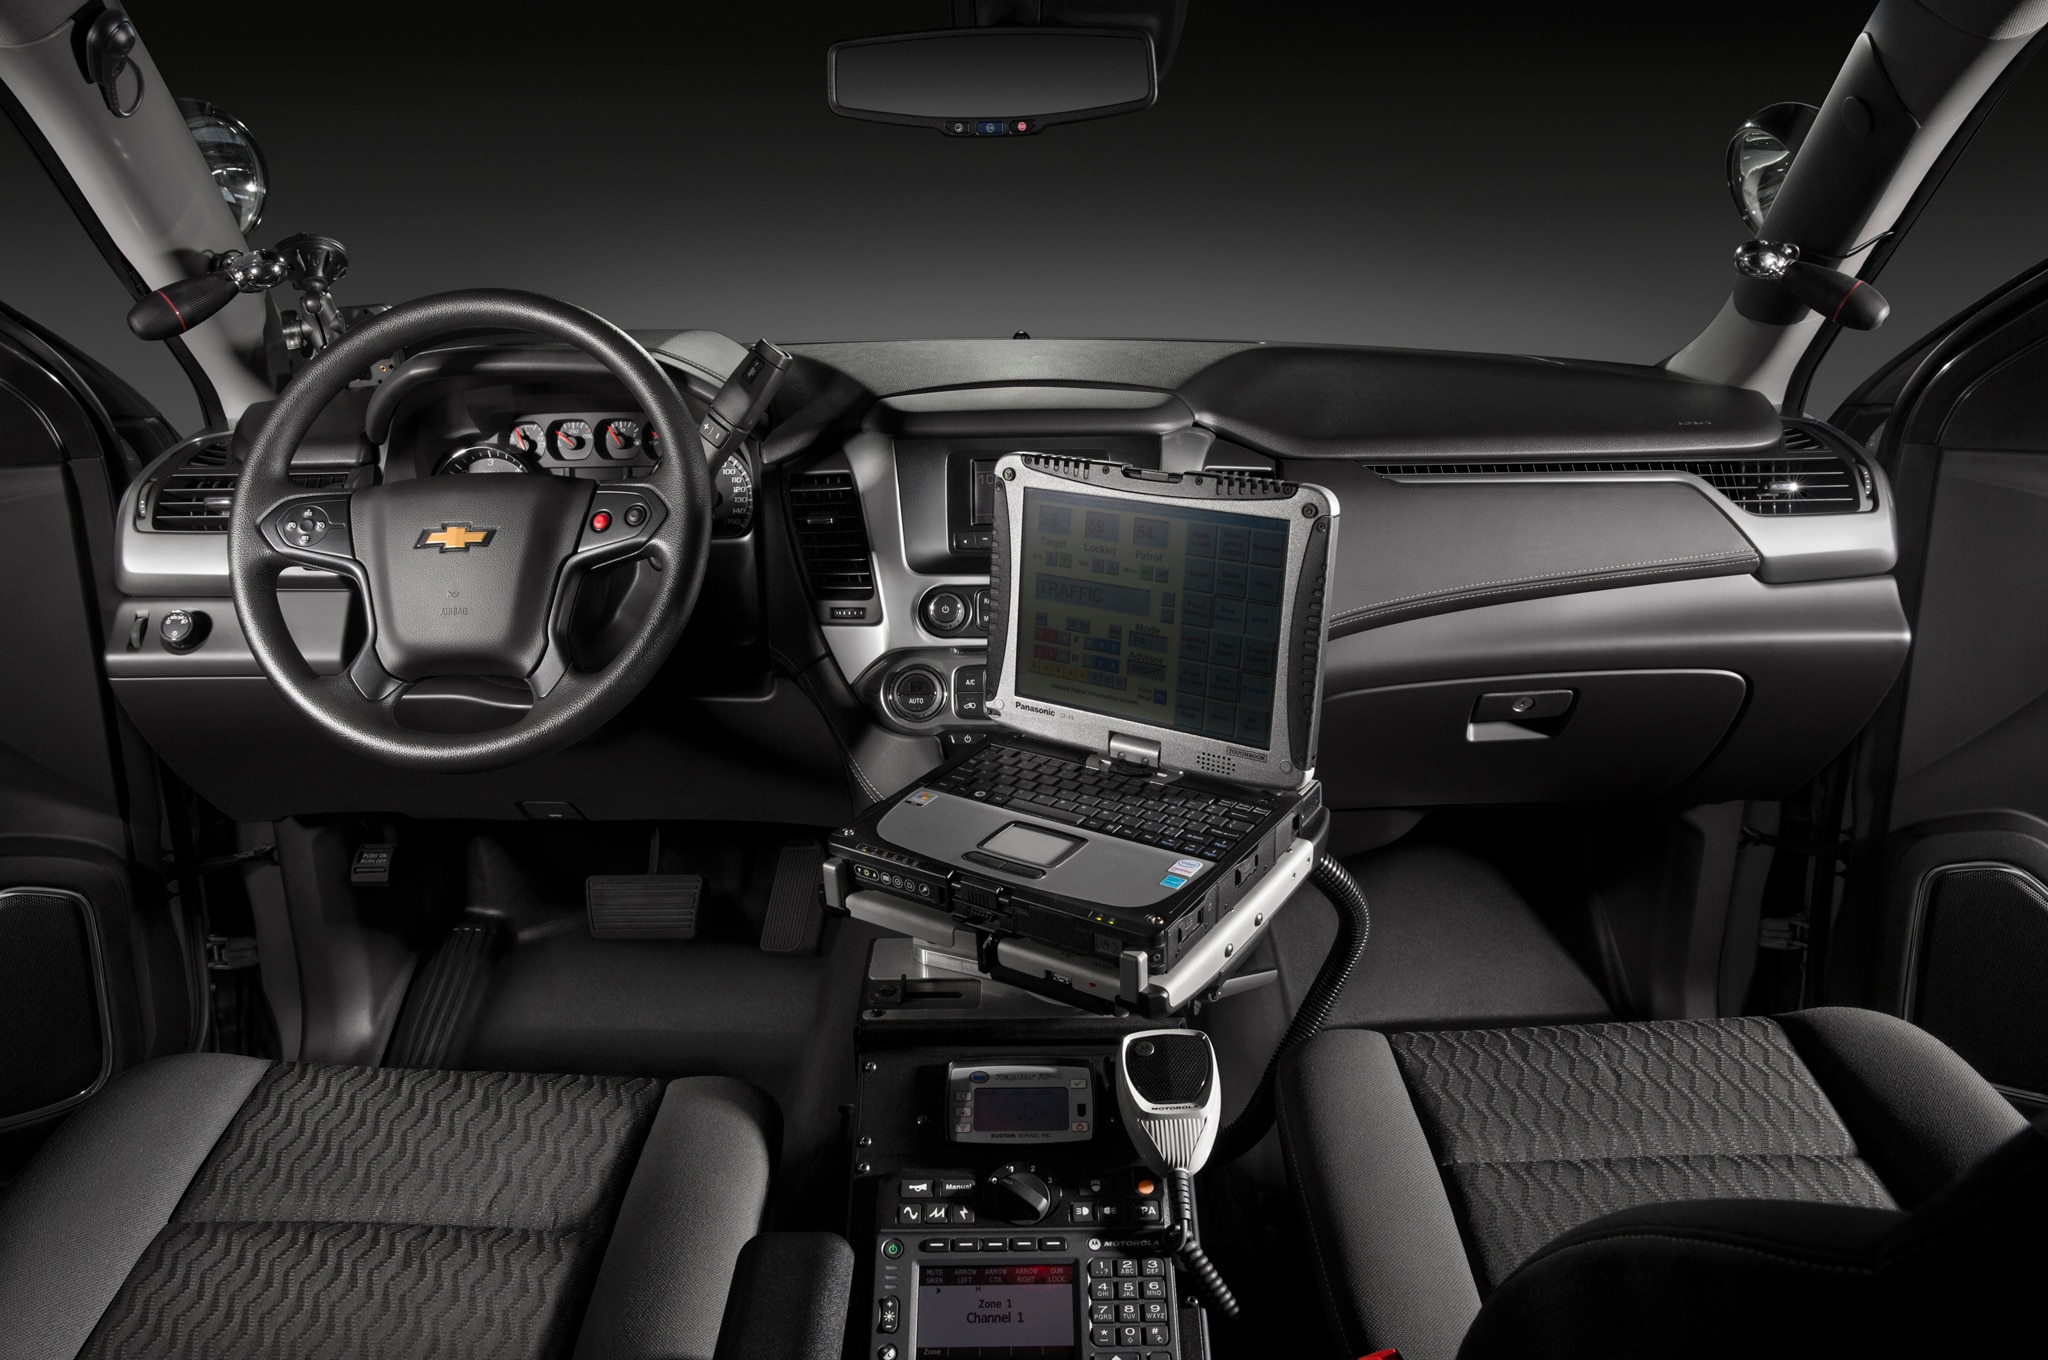 2015 chevrolet tahoe police concept interior?resize=618%2C410 2017 tahoe police package wiring diagram 2017 wiring diagrams Tow Wiring Harness 1993 F150 at creativeand.co